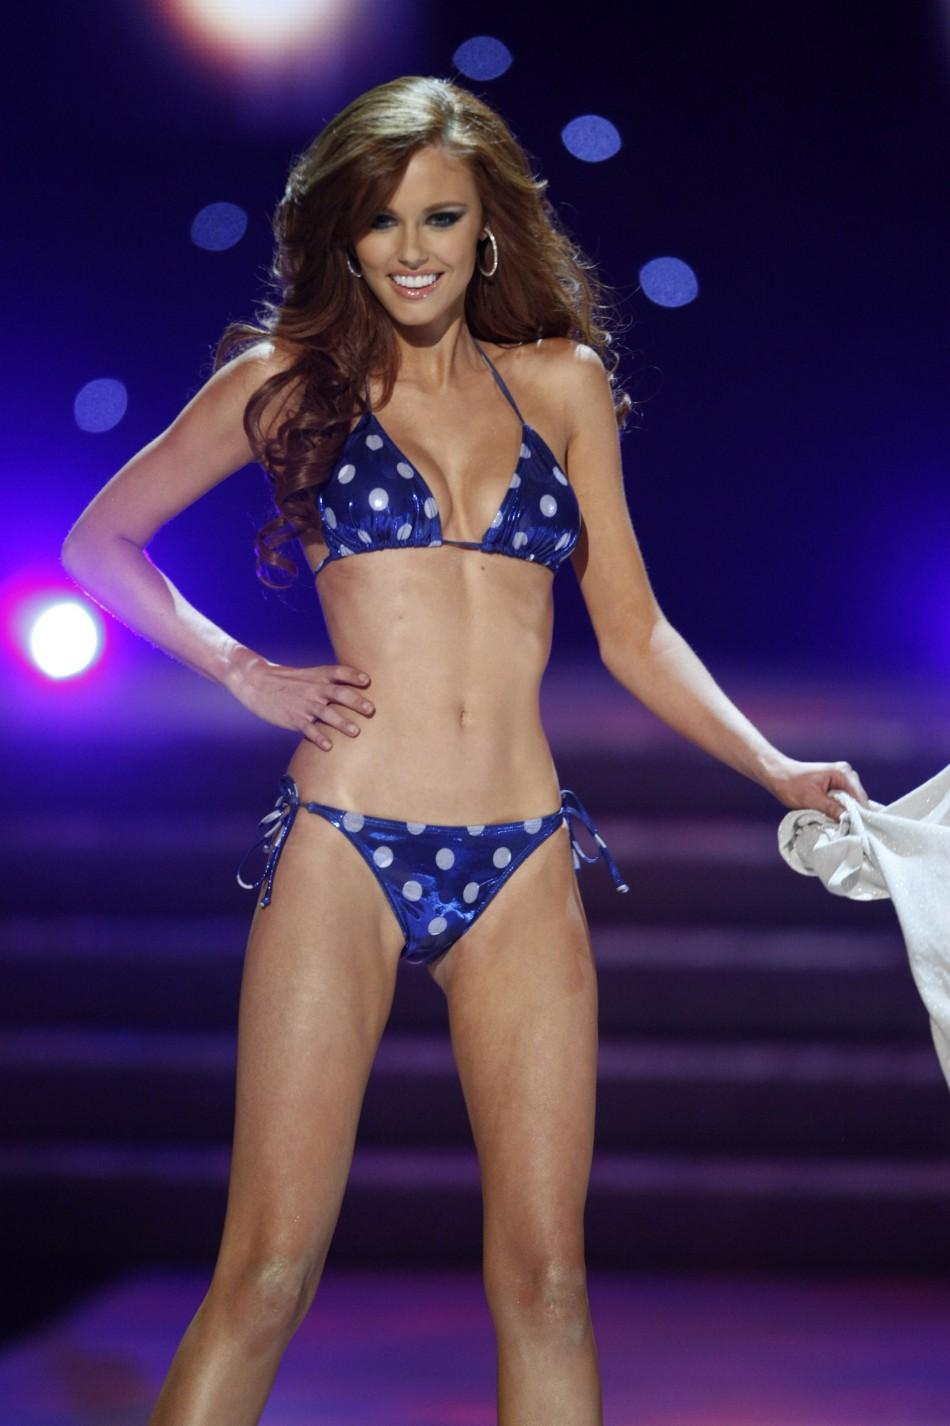 Miss California Alyssa Campanella is shown during the swimsuit competition of the Miss USA pageant in the Theatre for the Performing Arts at Planet Hollywood Hotel and Casino in Las Vegas, Nevada June 19, 2011.